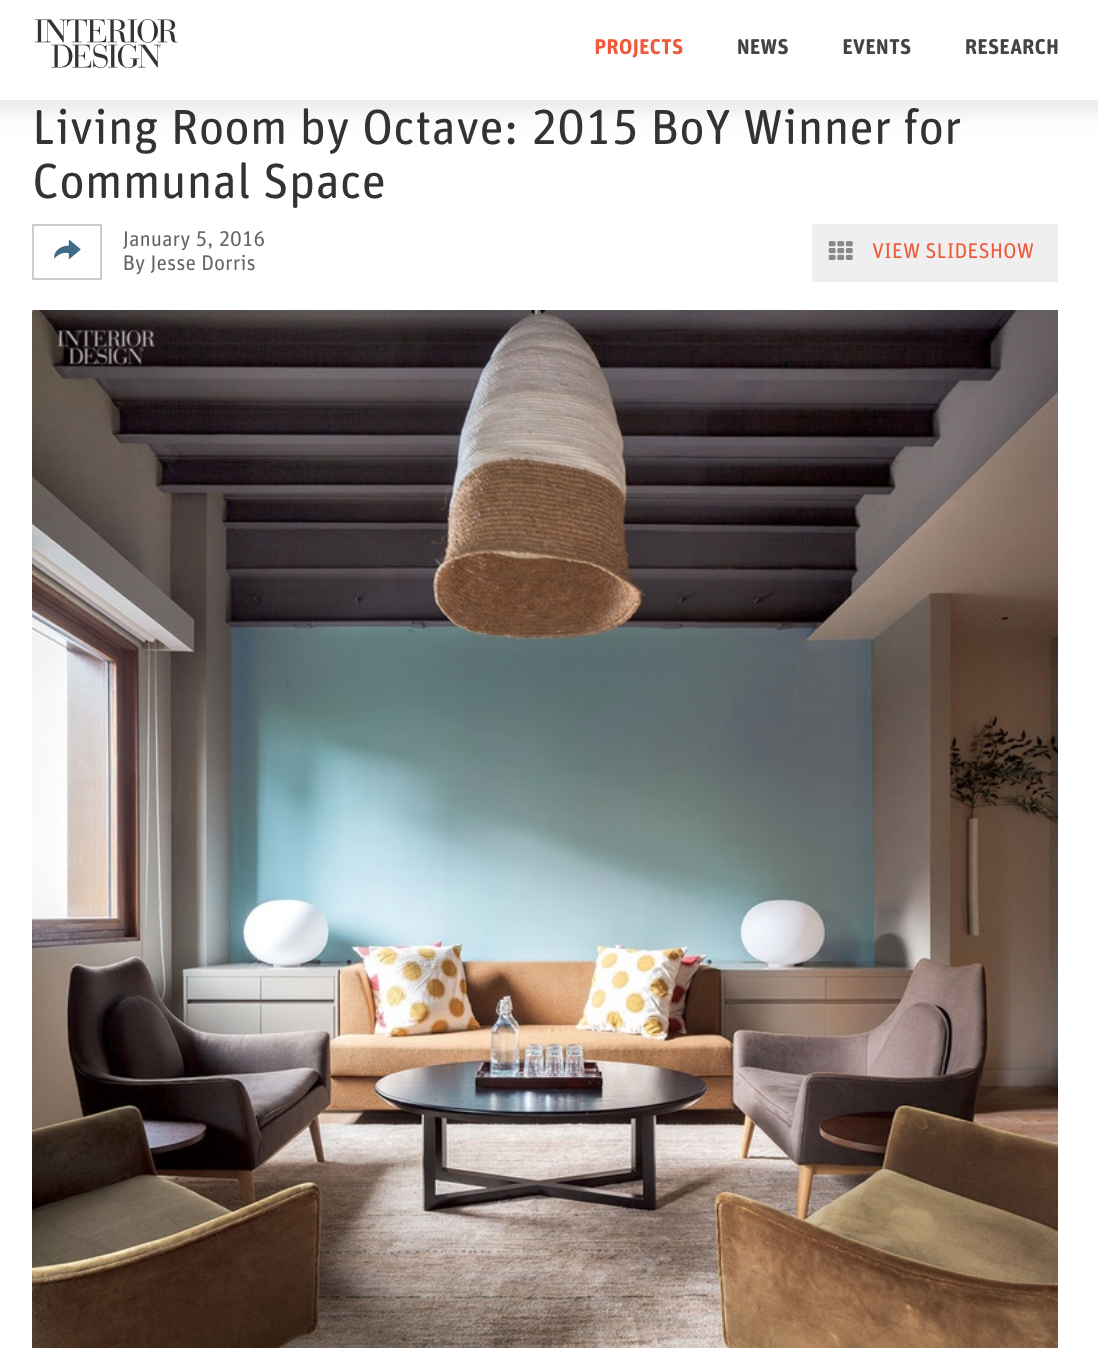 【Award】2015 Best of Year Award Communal Space - The Living Room by Octave - Congratulations Tsao & McKown Architects for winning the Communal Space category of 2015 Best of Year Award by Interior Design with their project in Shanghai, The Living Room by Octave!